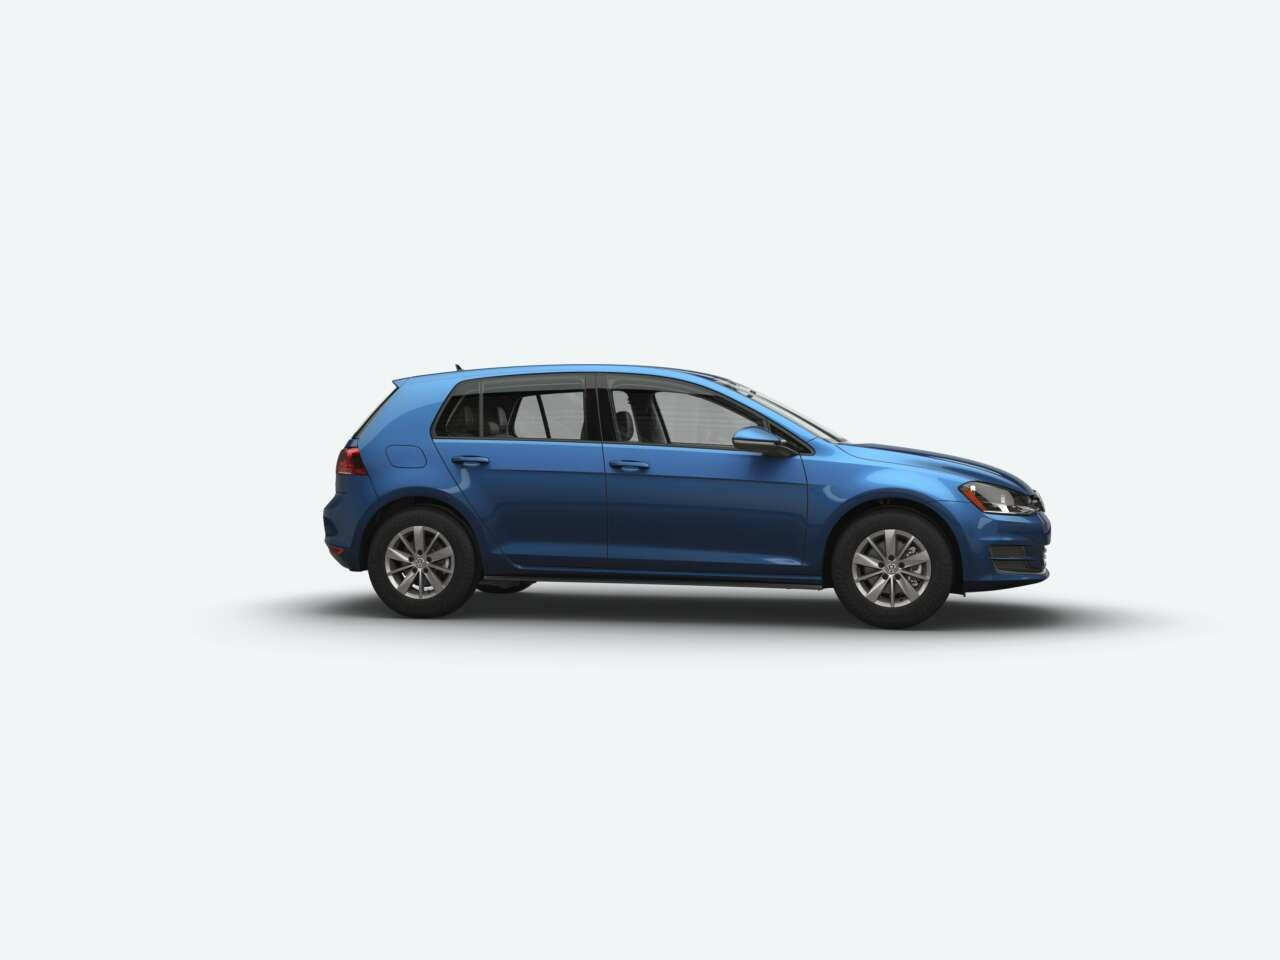 volkswagen passat vehicles best and new purchase leasing offers prices vw ma near lease boston